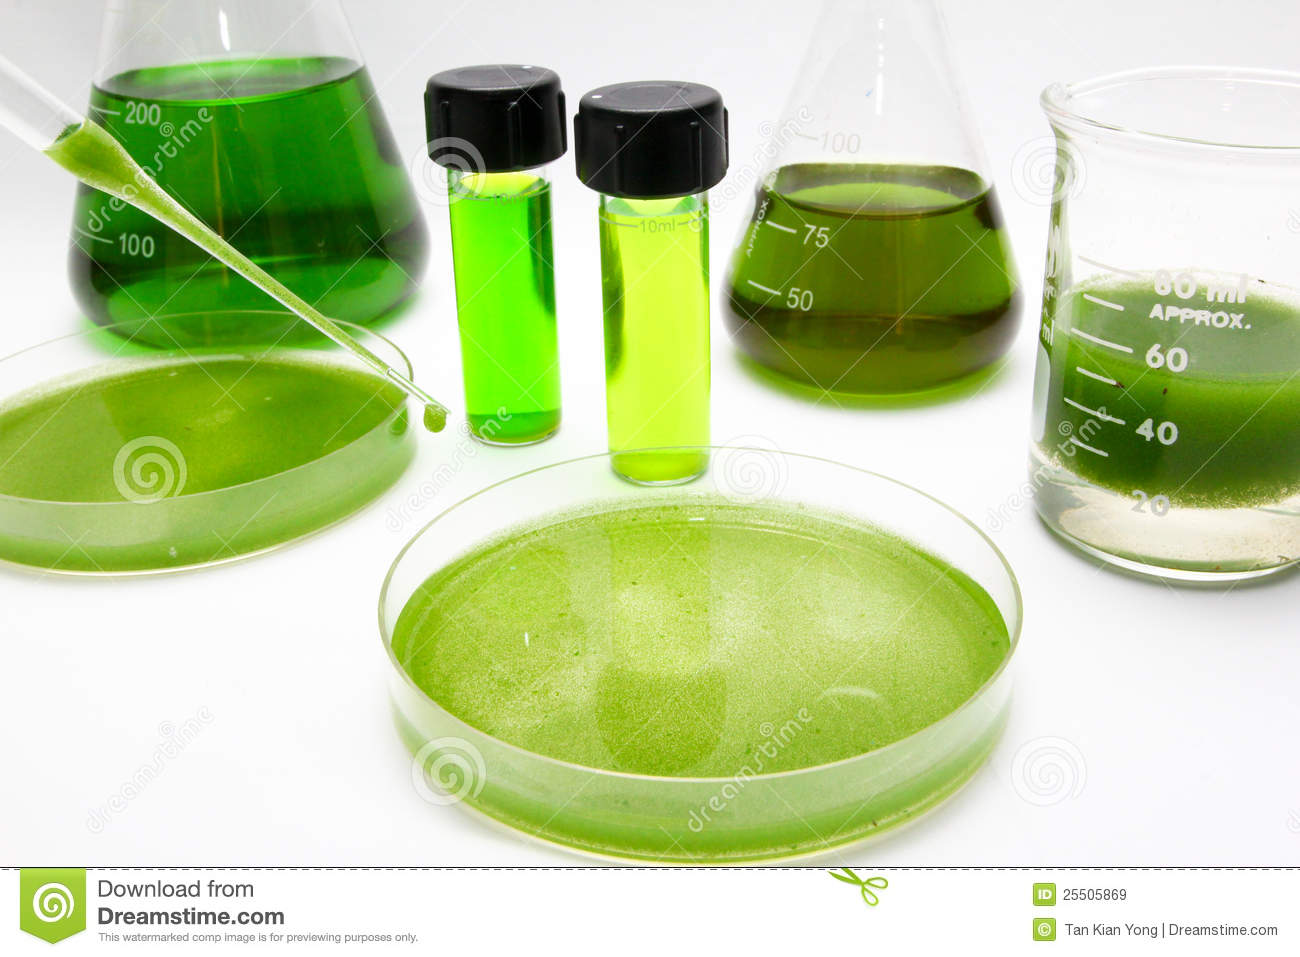 how to produce biodiesel from algae